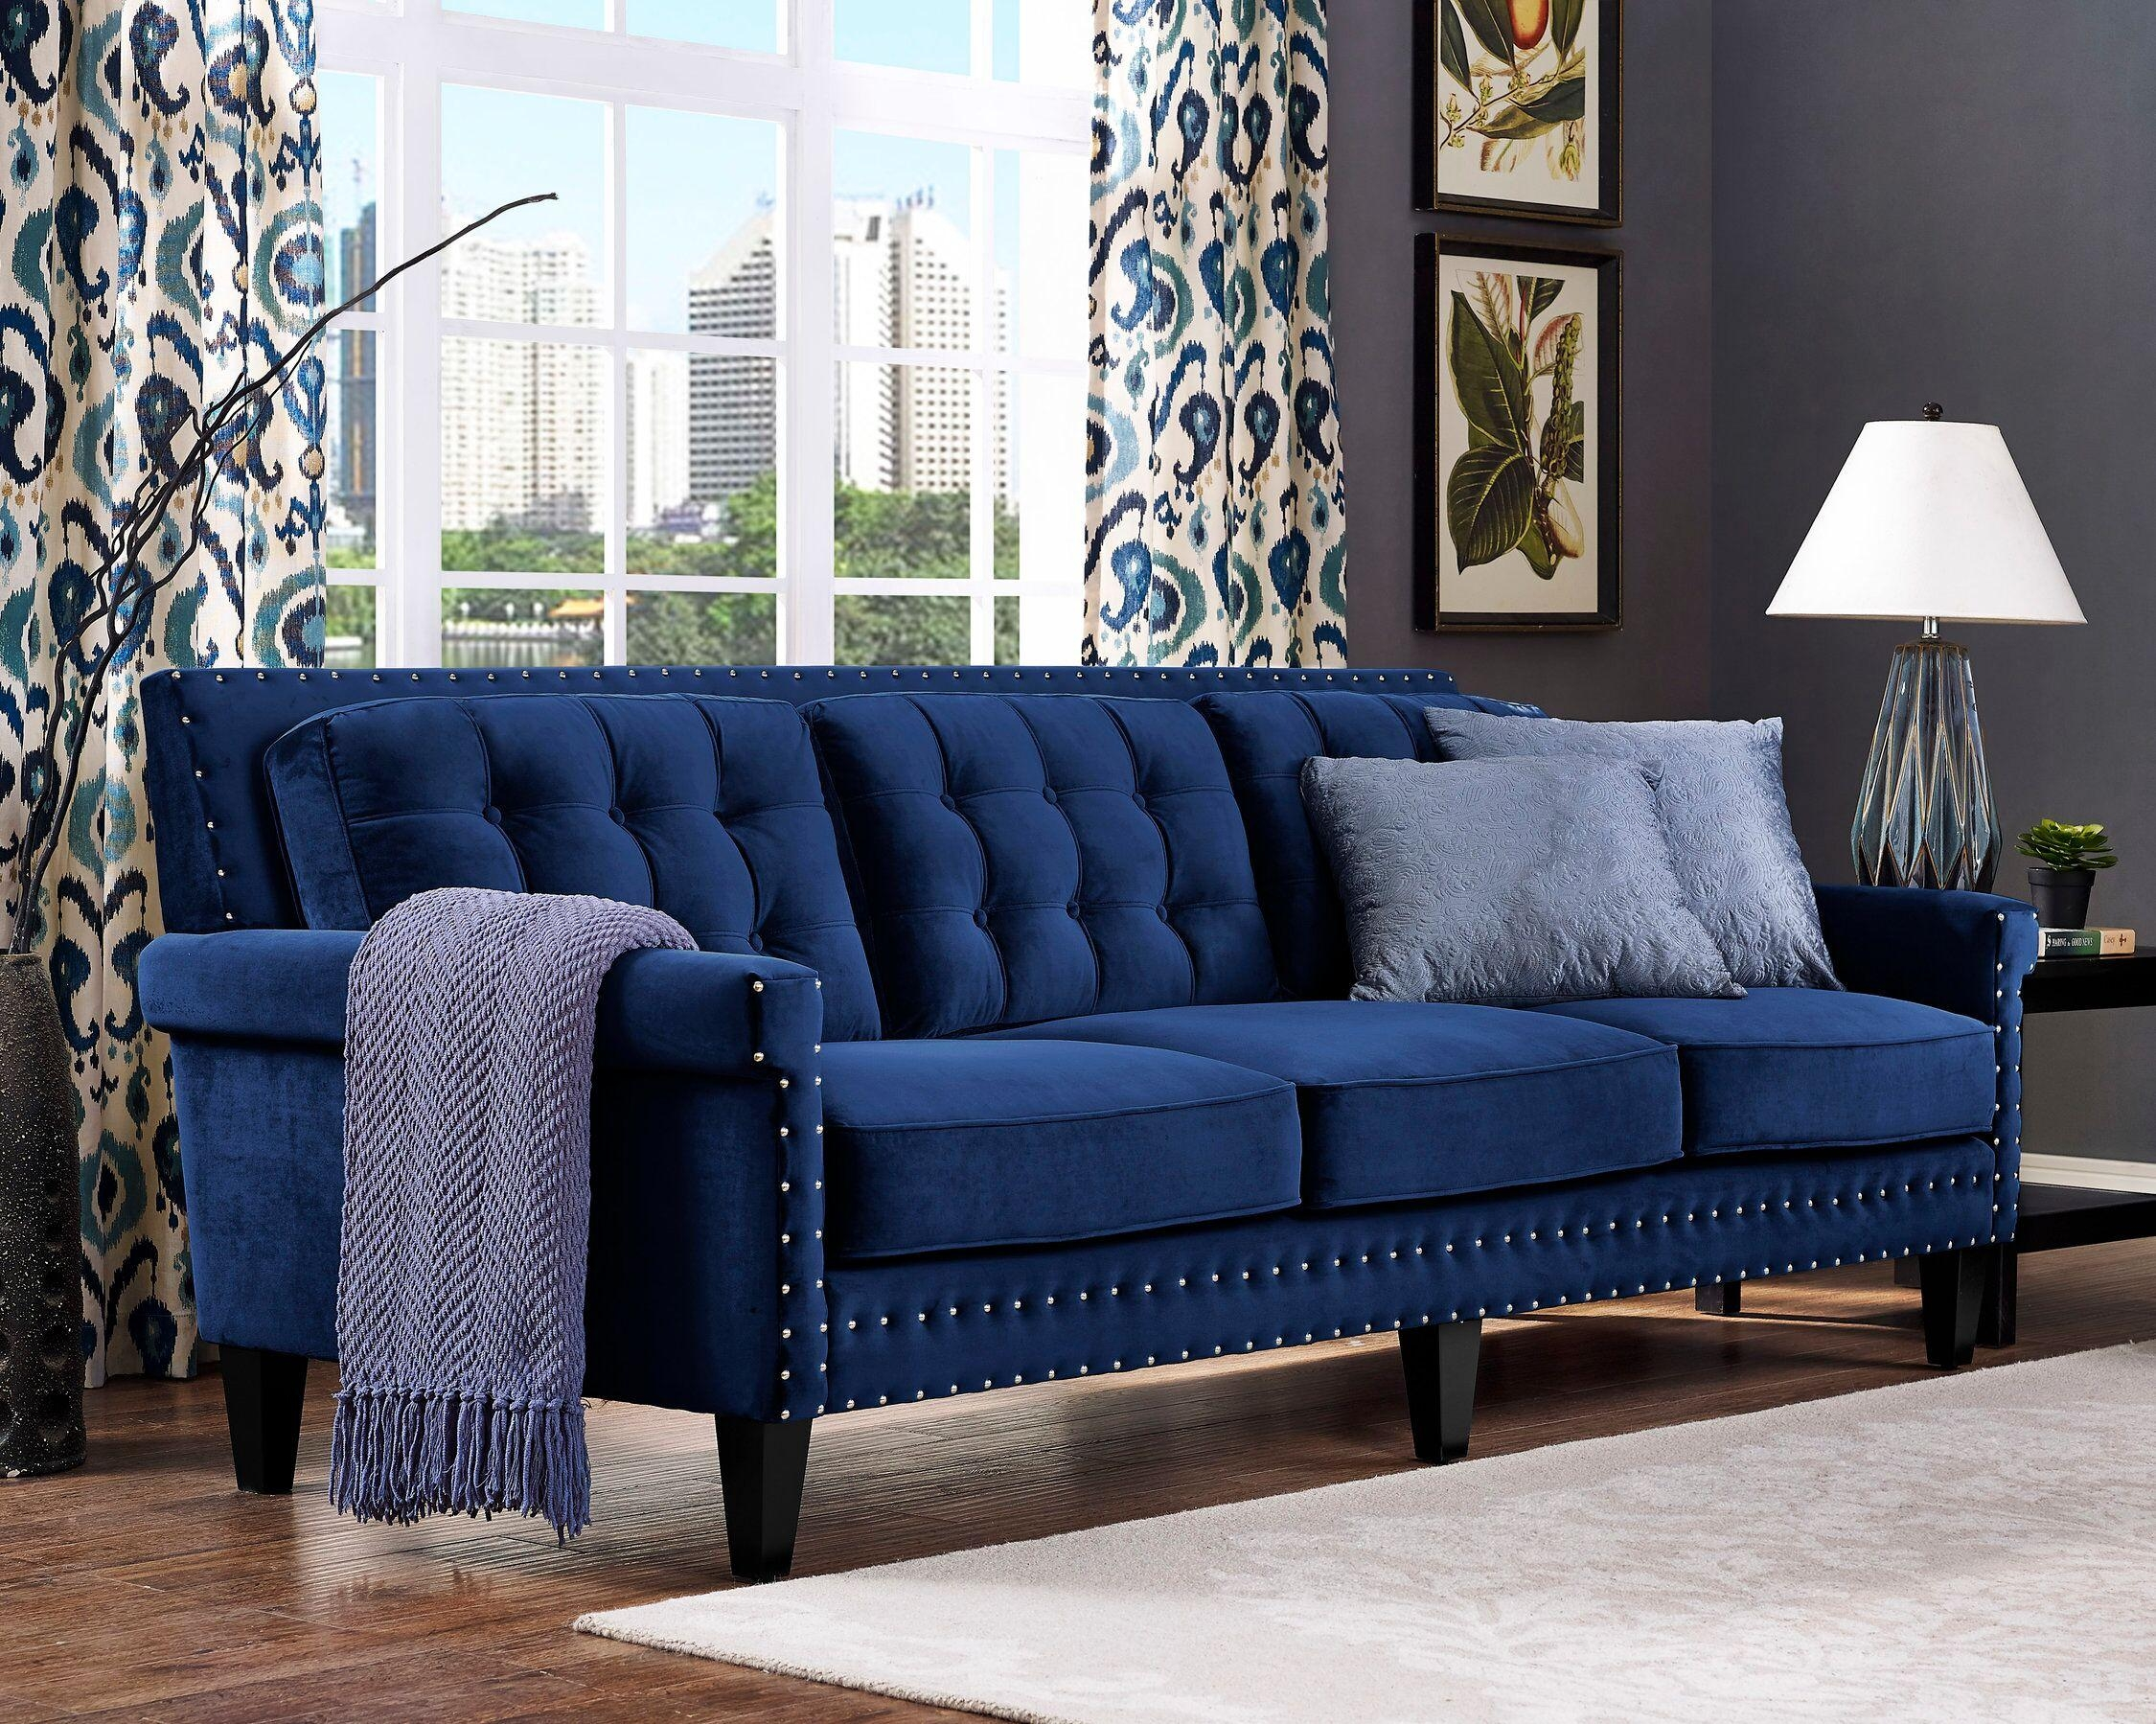 Light Blue Velvet Tufted Sofa Nail Head Accents Intended For Blue Velvet Tufted Sofas (Image 14 of 20)